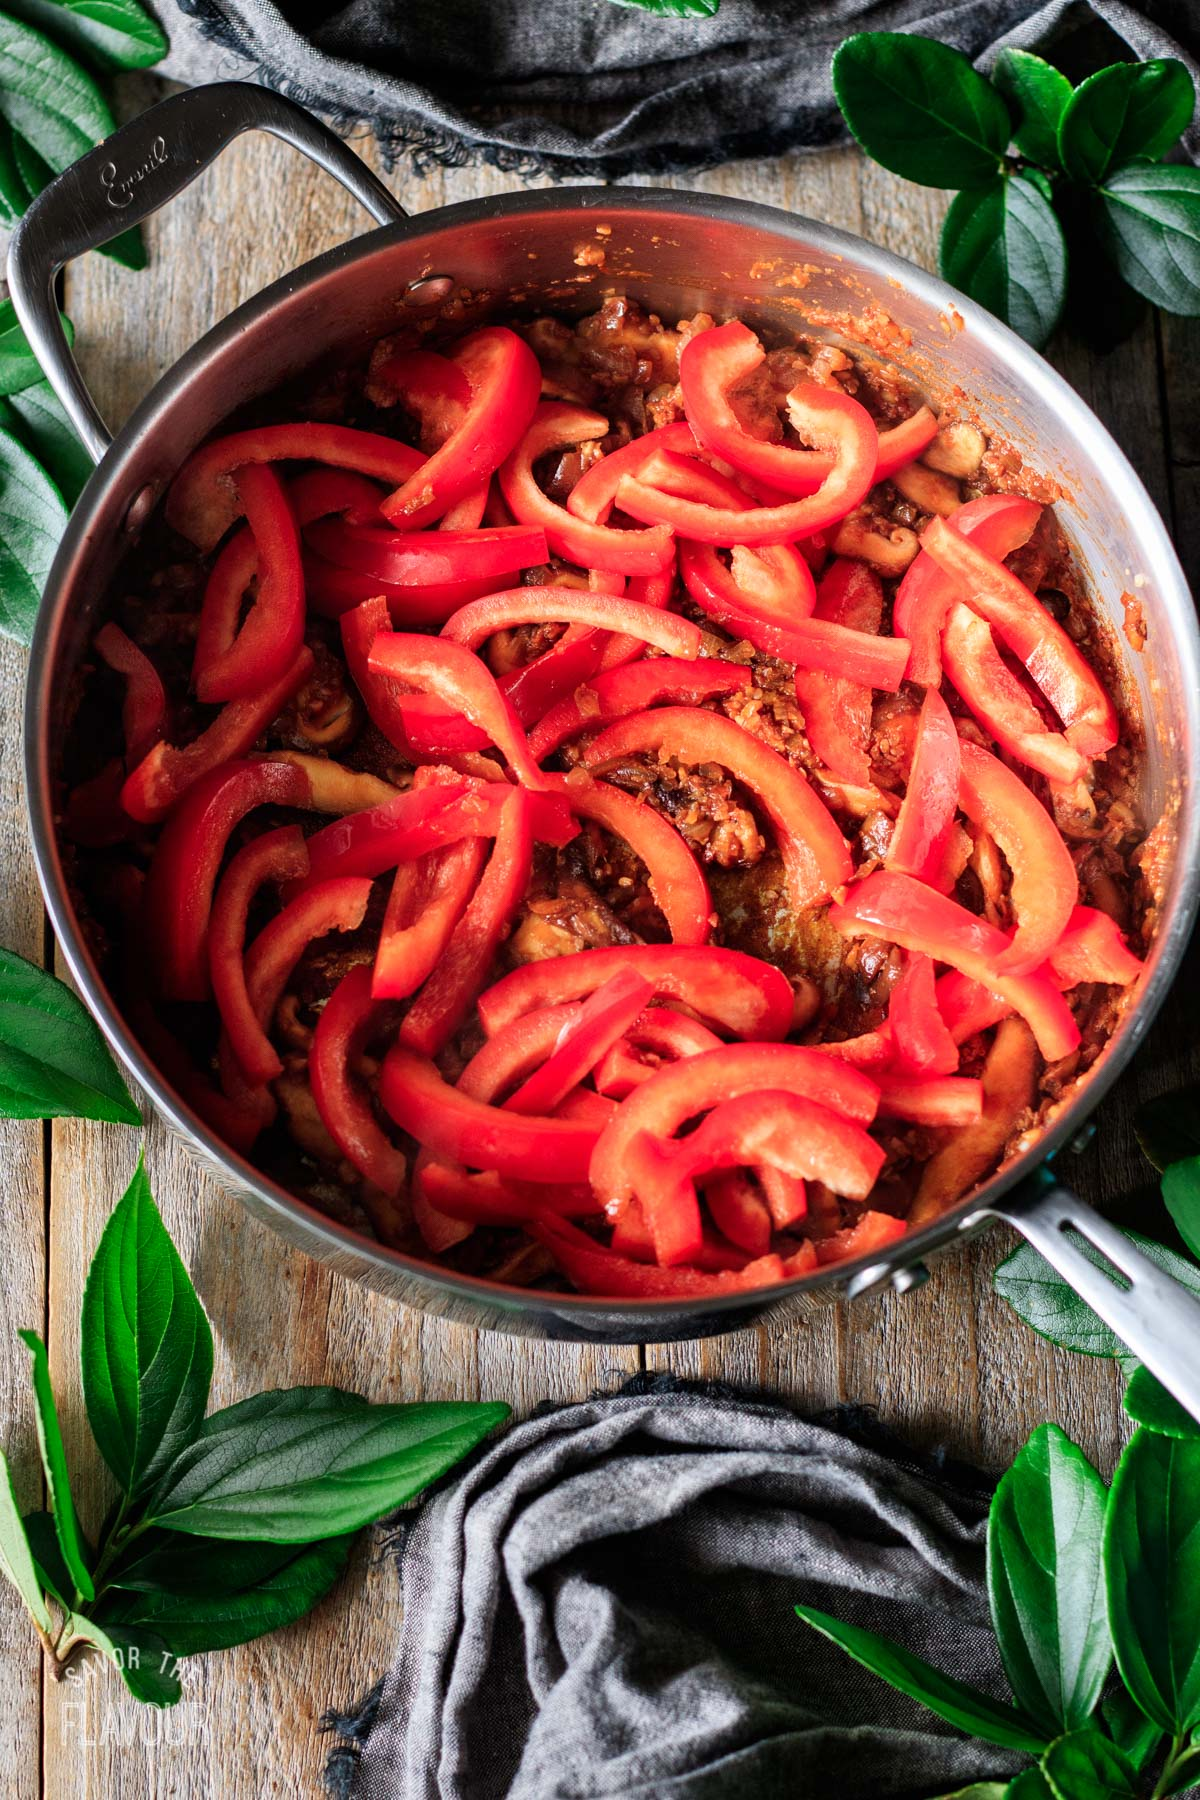 sliced red peppers and other veggies in a skillet